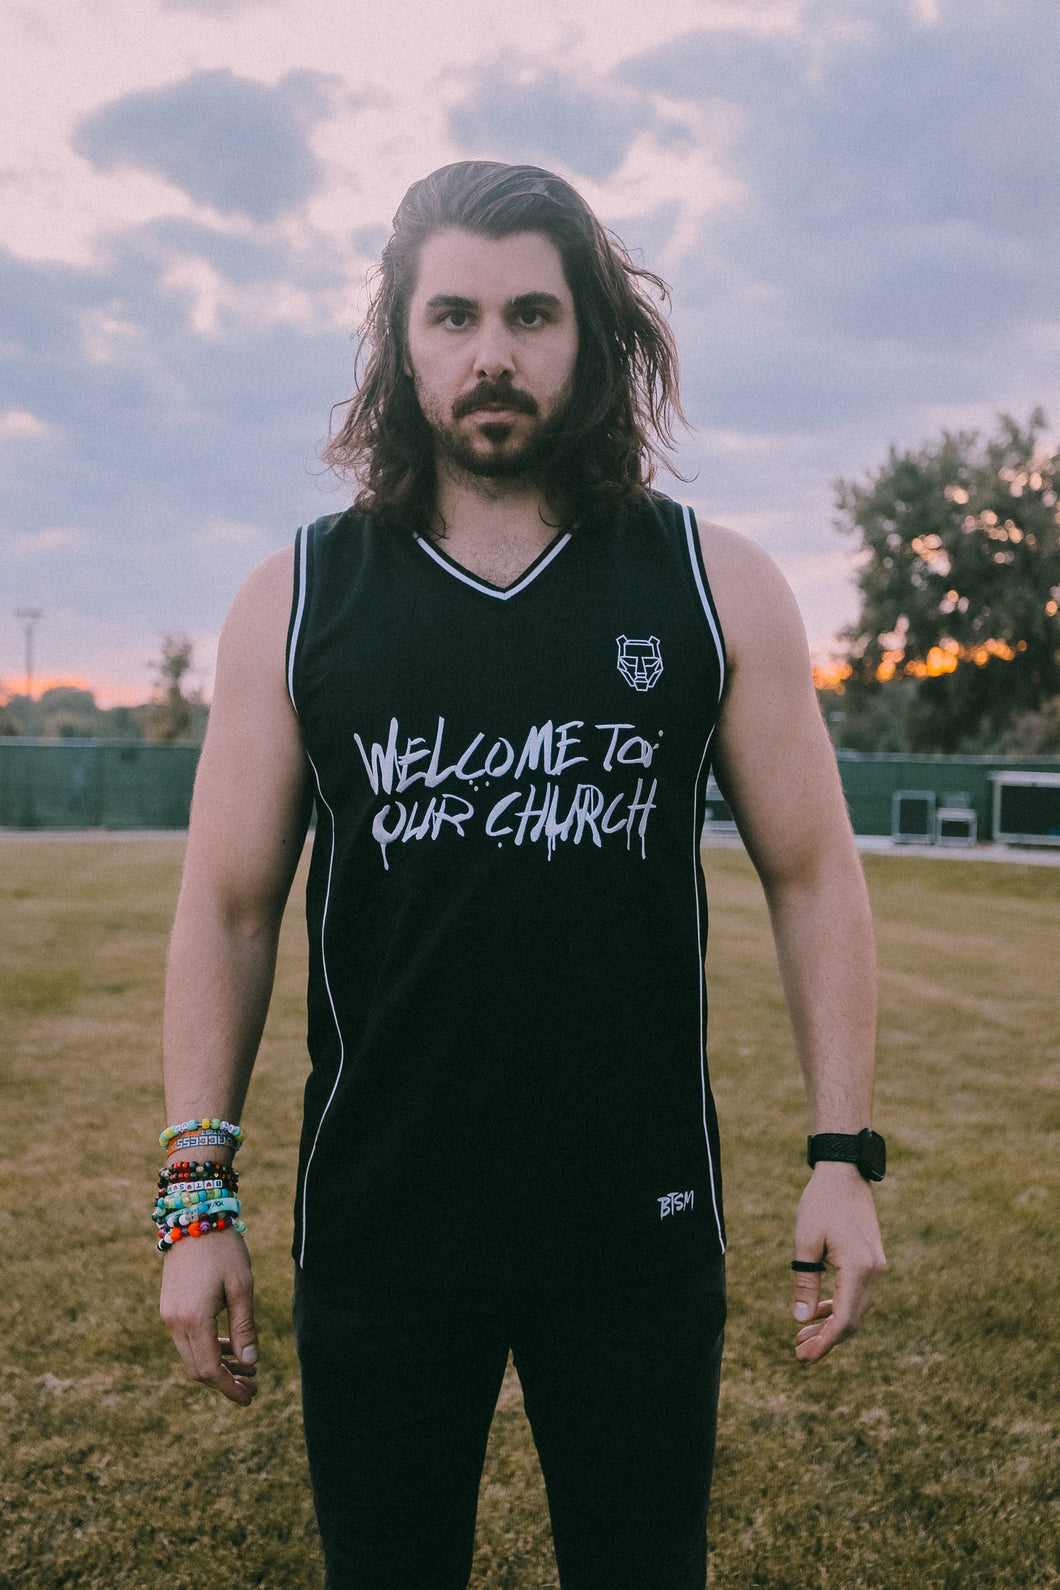 BTSM - Welcome To Our Church - Premium Basketball Jersey